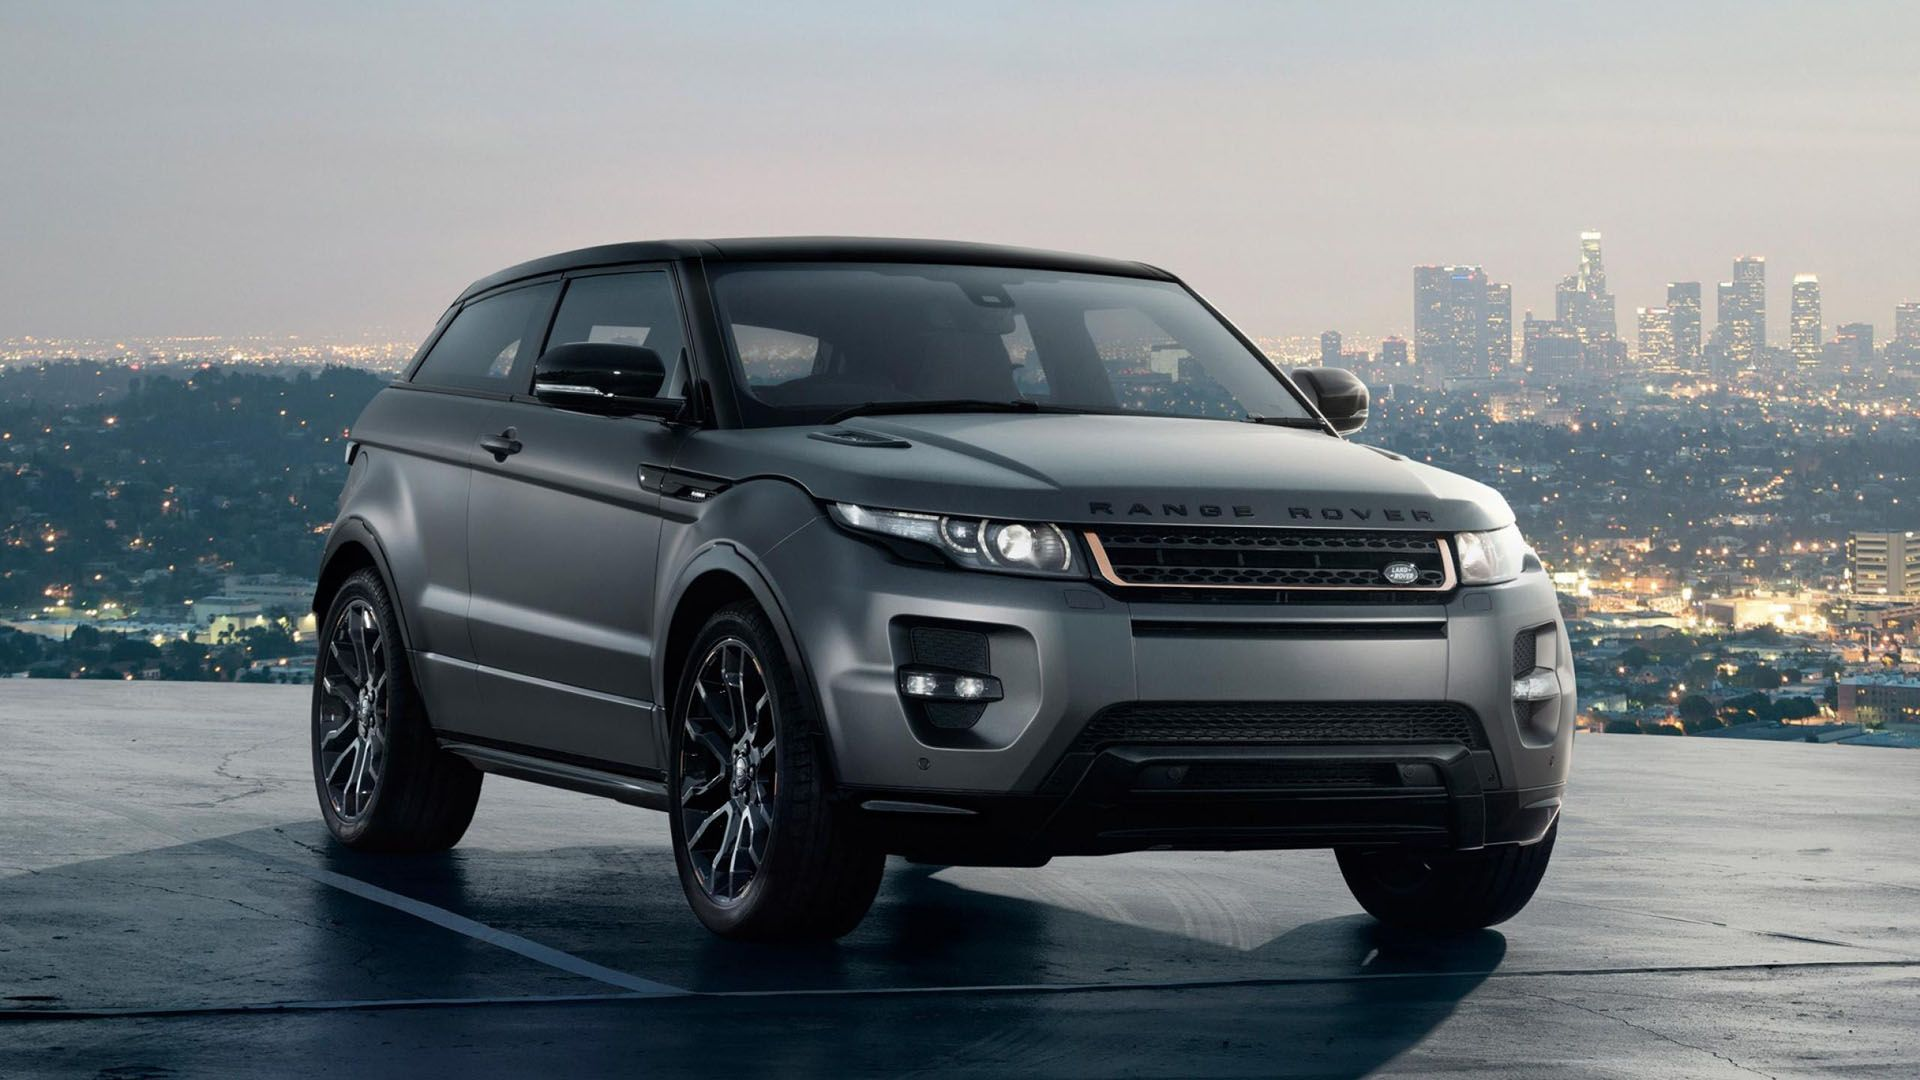 2012 Evoque Land Rover HD Wallpaper